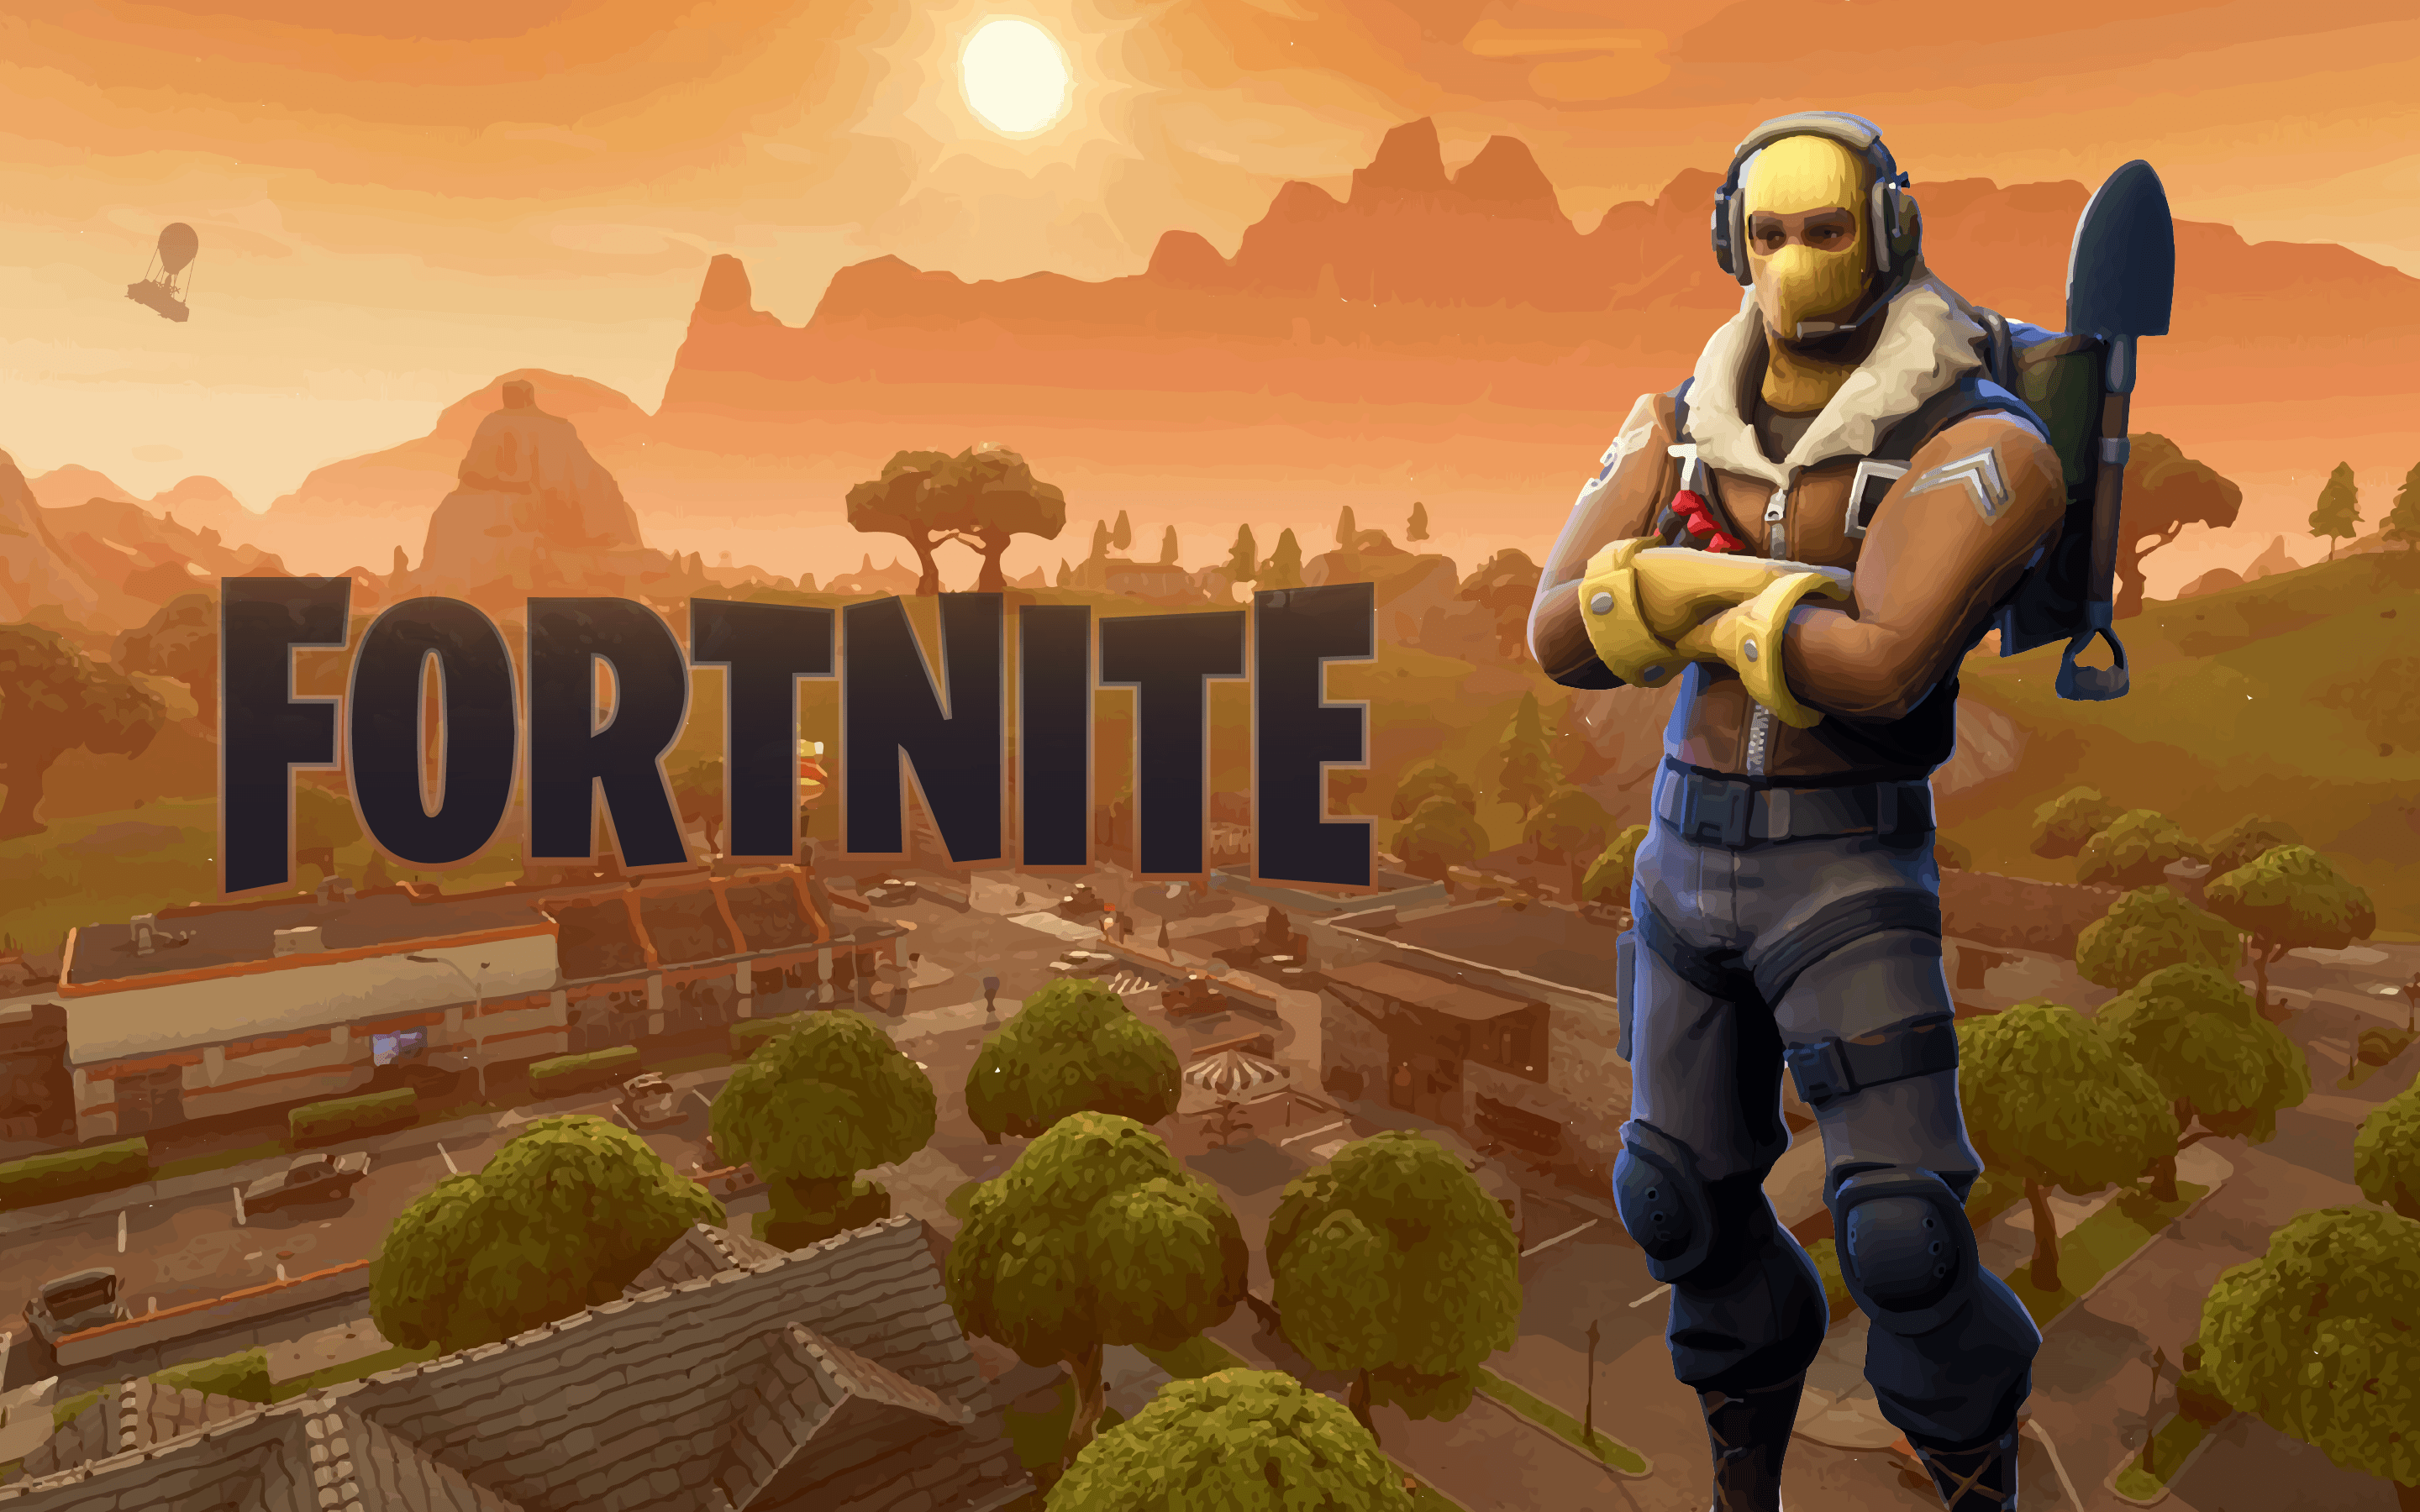 Free Download Fortnite Wallpaper Background 47417 Icons And Png Backgrounds 2880x1800 For Your Desktop Mobile Tablet Explore 26 Fortnite Hd Wallpapers Fortnite Hd Wallpapers Fortnite 4k Hd Wallpapers Fortnite Wallpapers